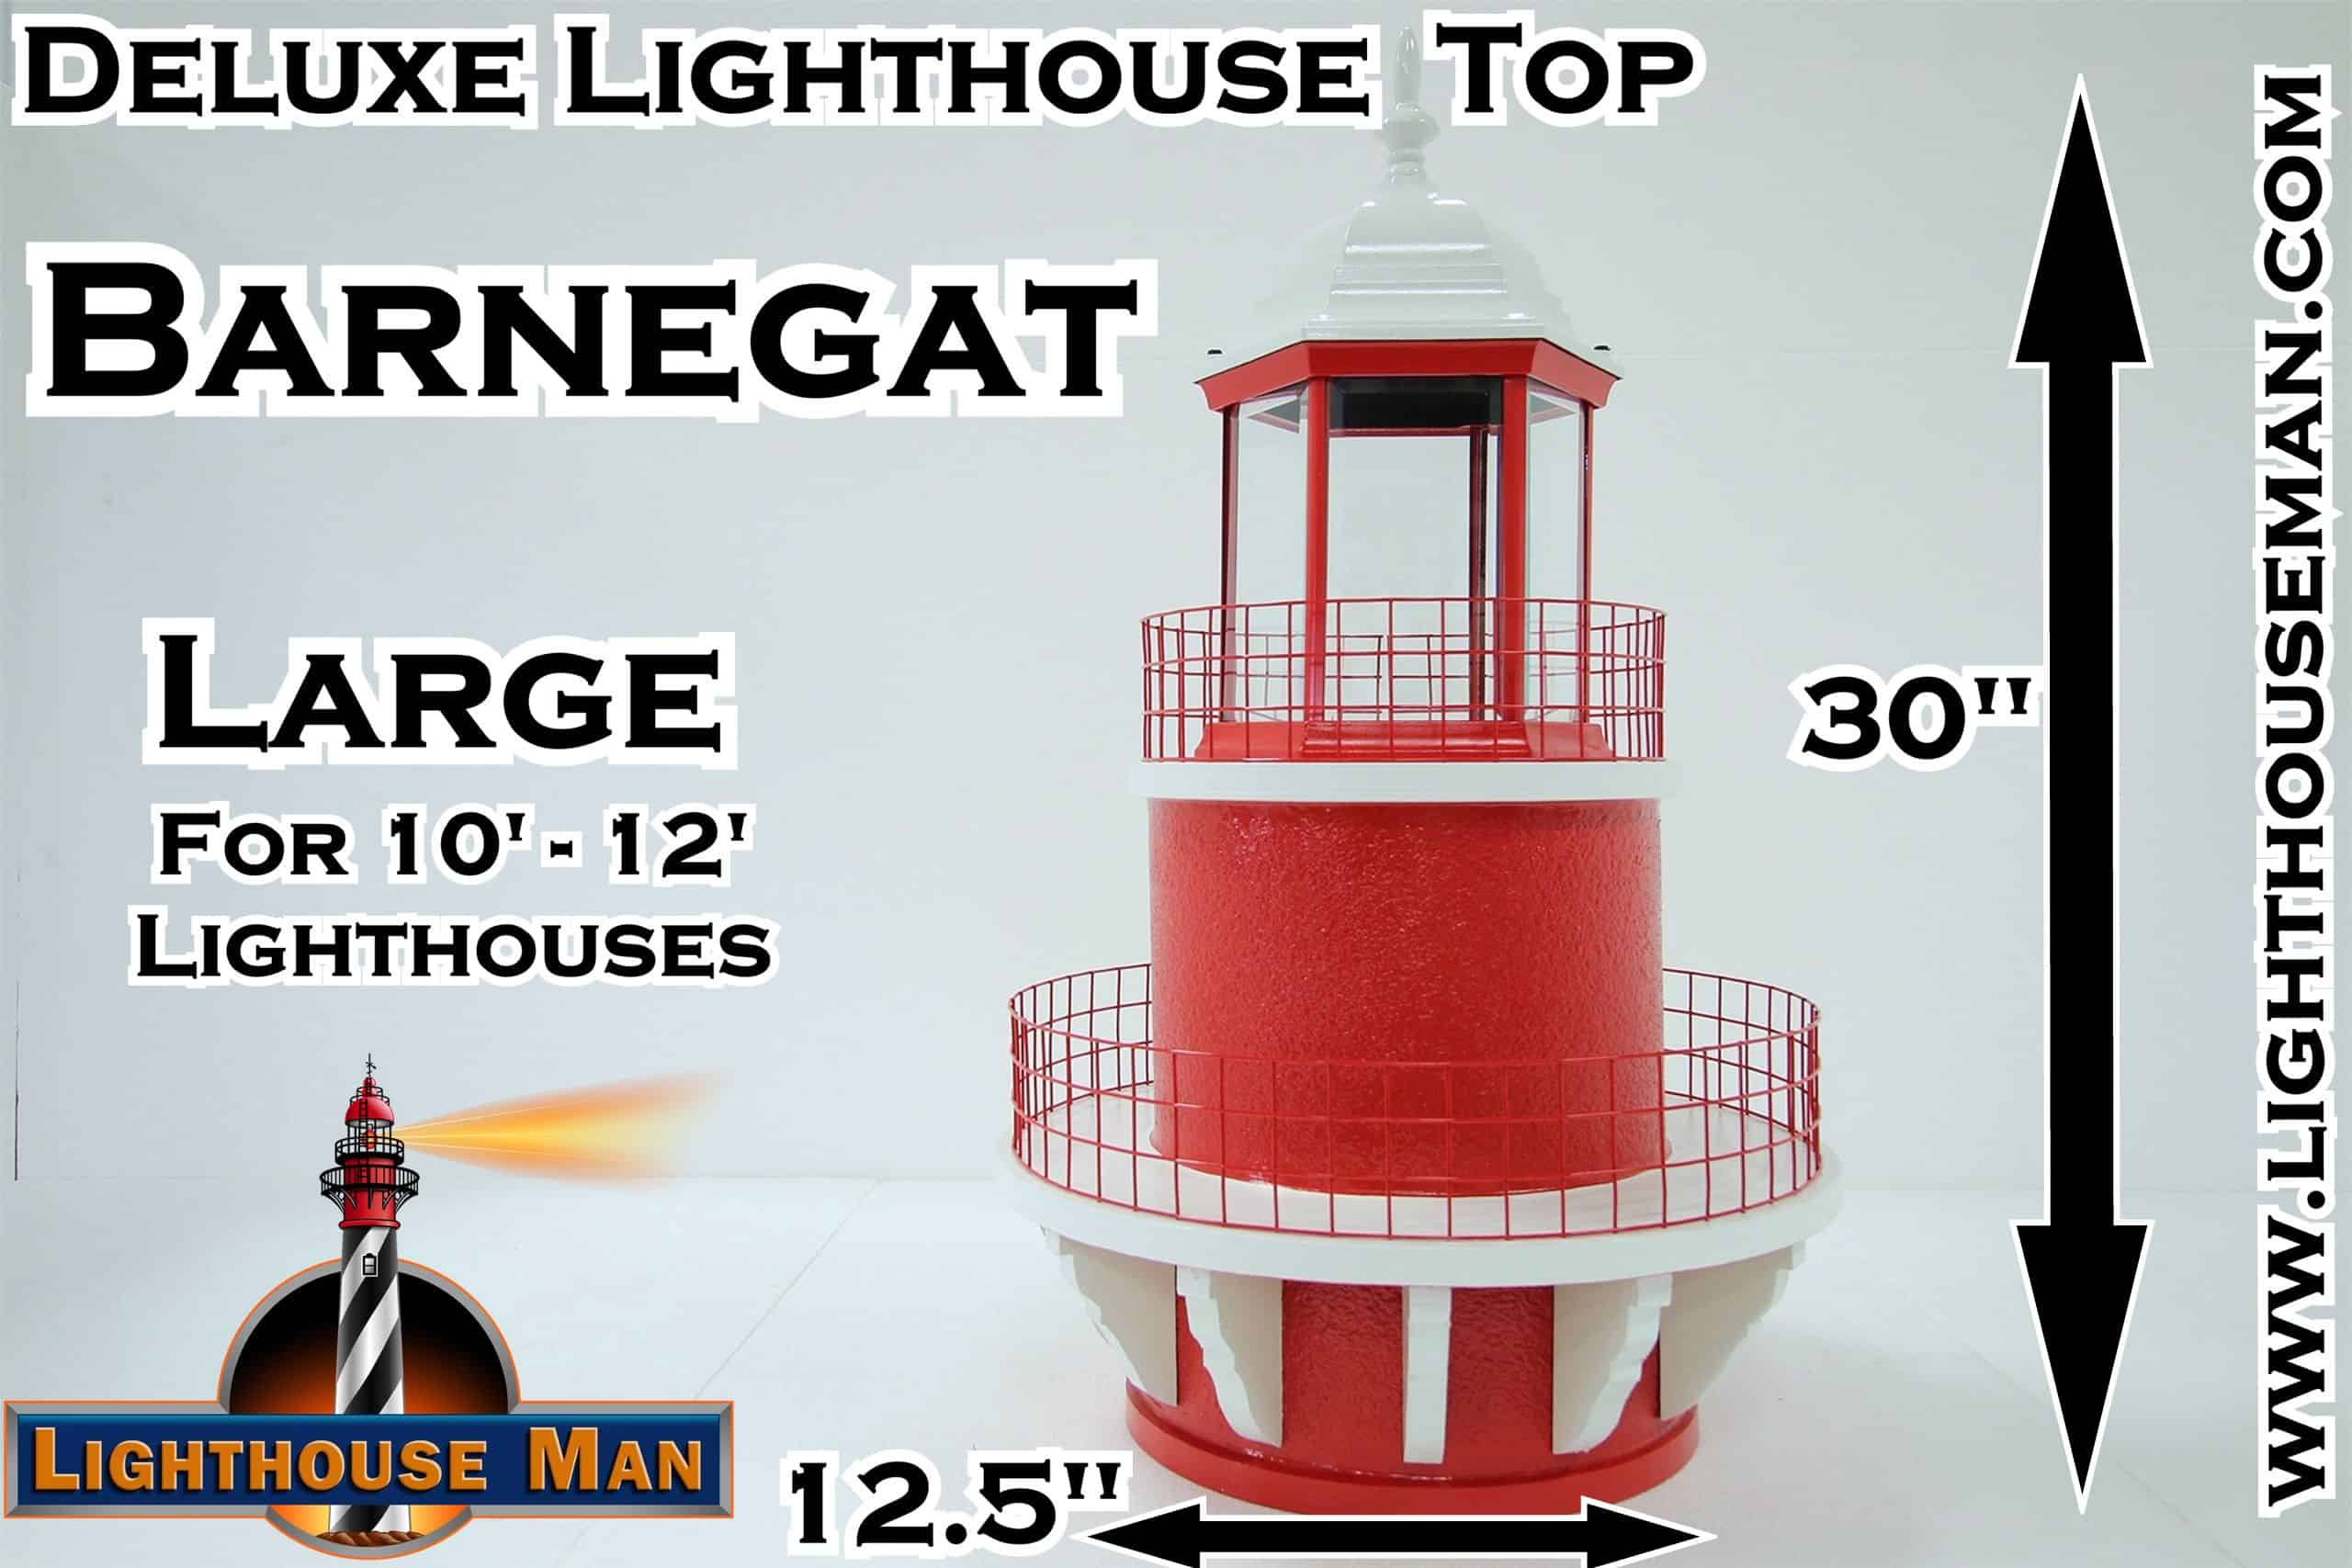 Deluxe Large Barnegat Lighthouse Top